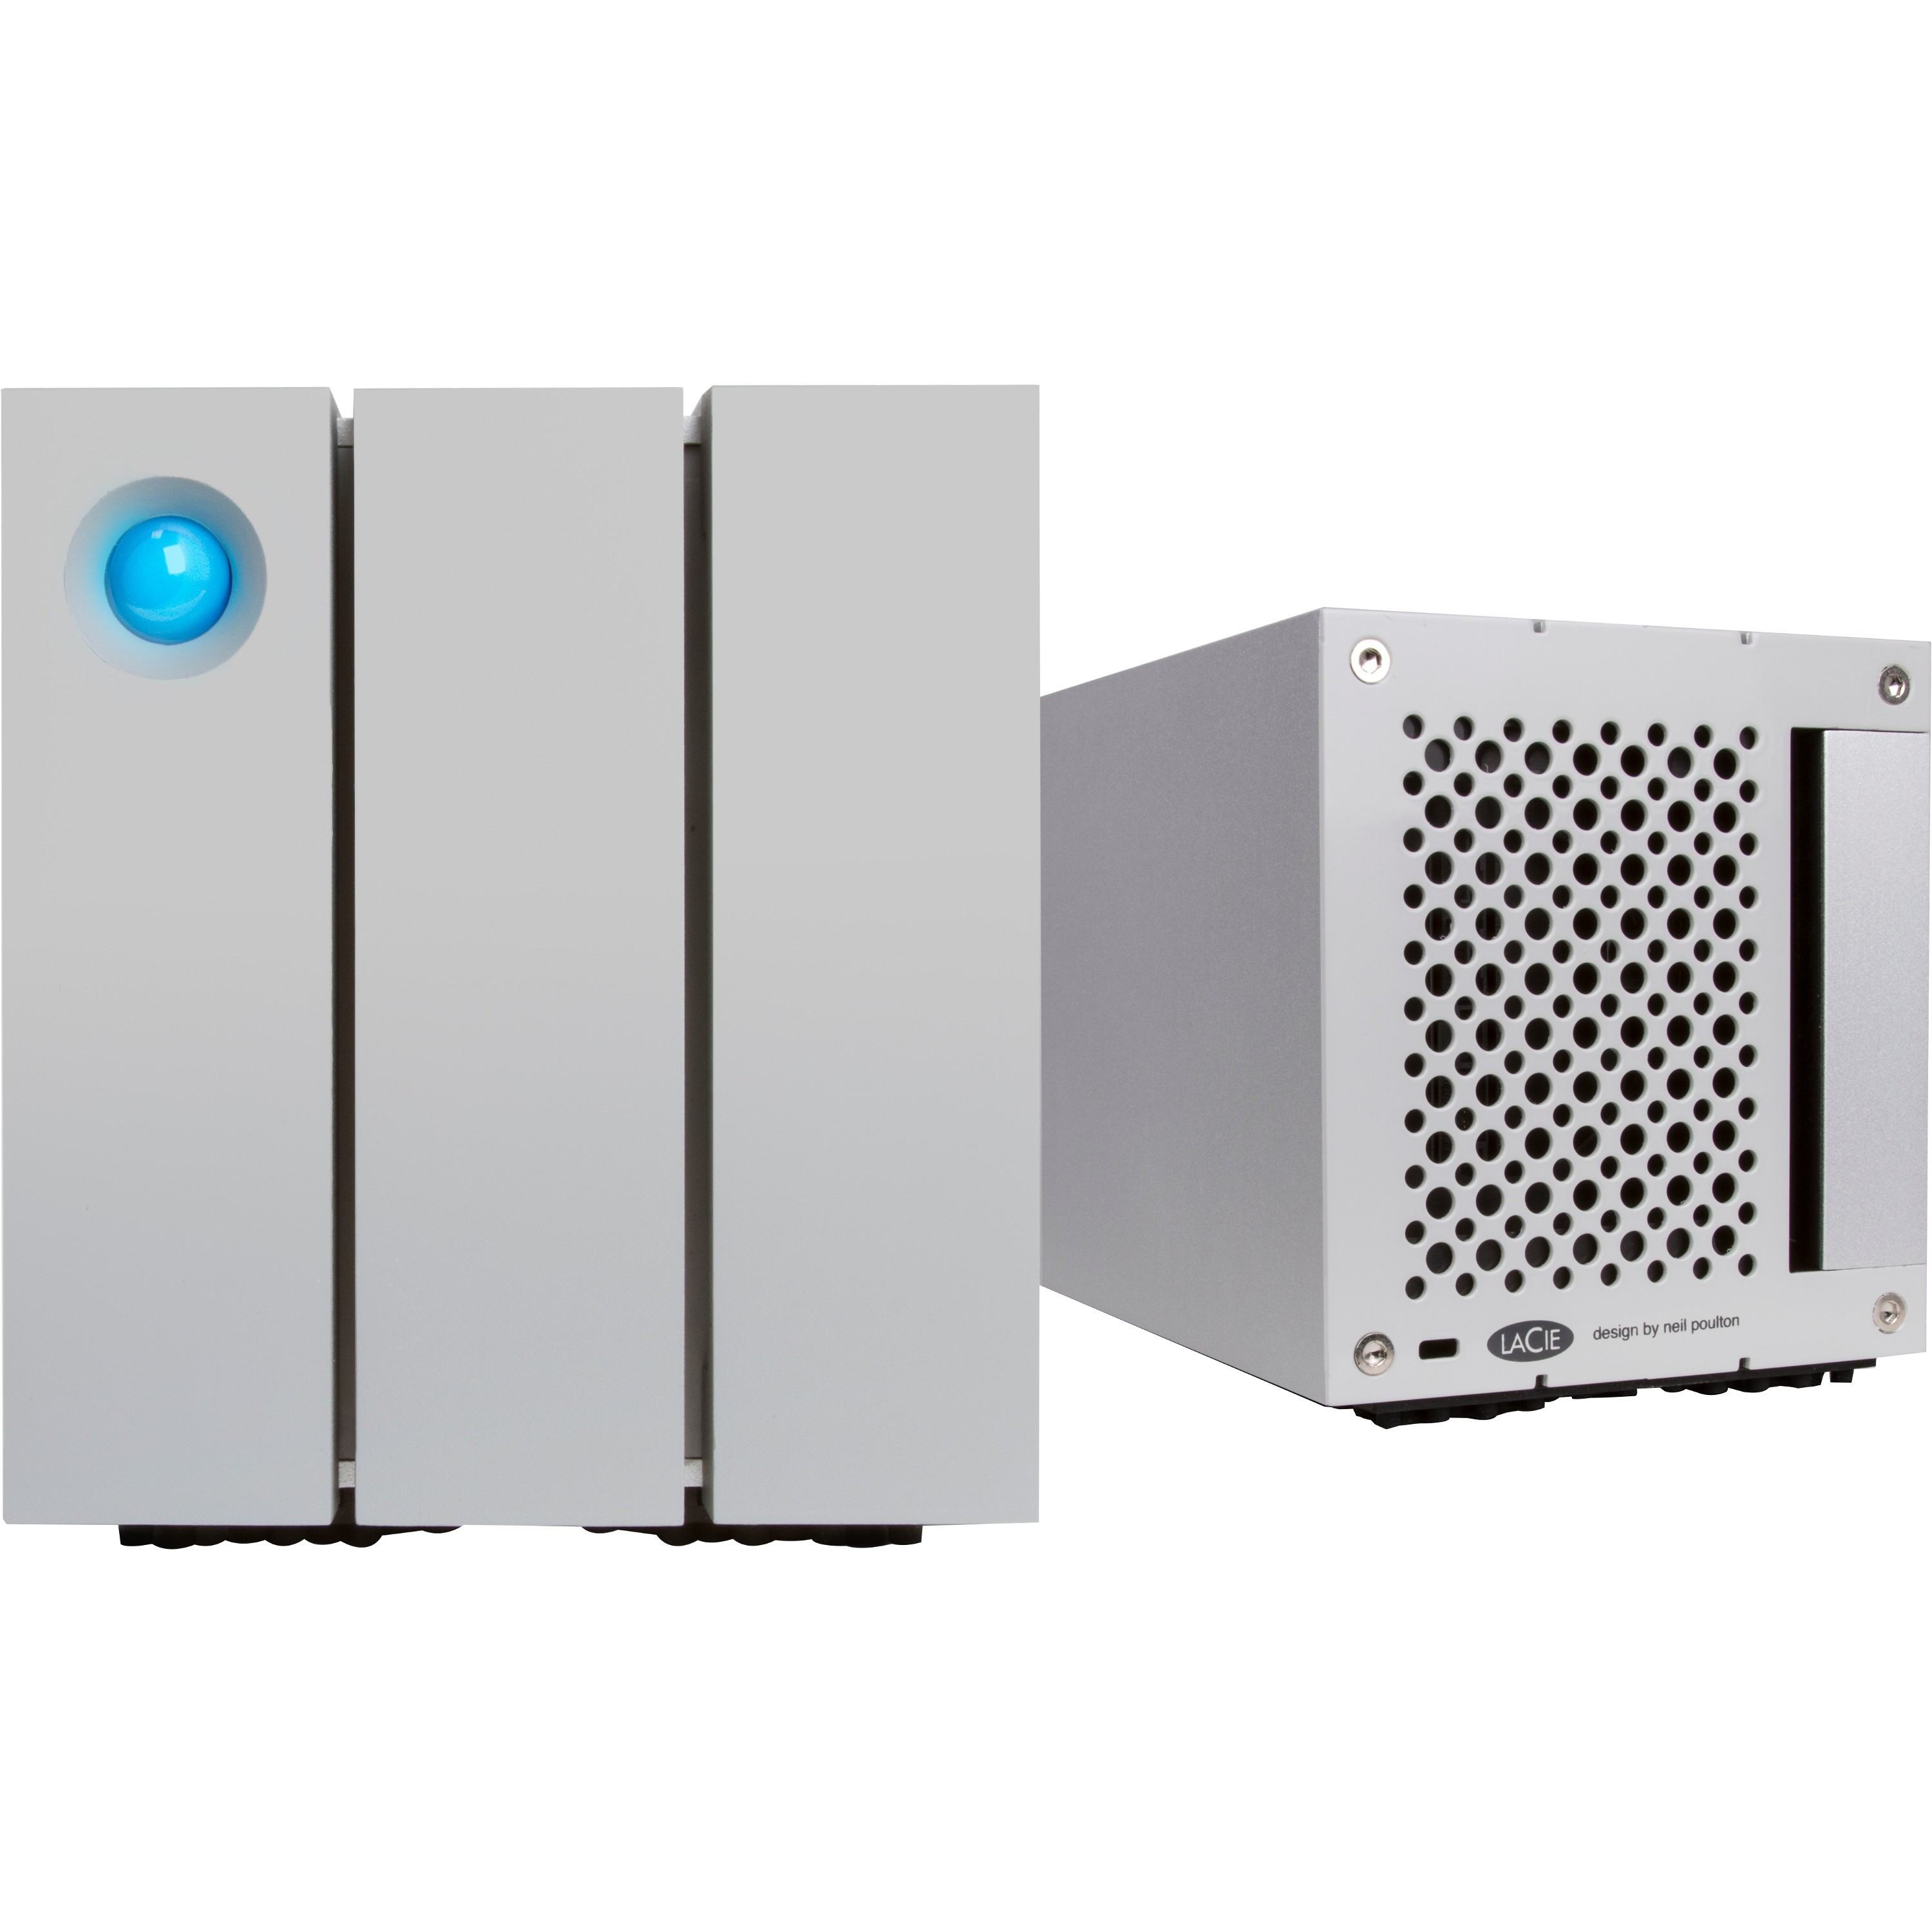 Lacie STEY8000401 Seagate Lacie 2big Das Array 8tb Usb 3.0 Thunderbolt 2 External Hard Drive by LaCie